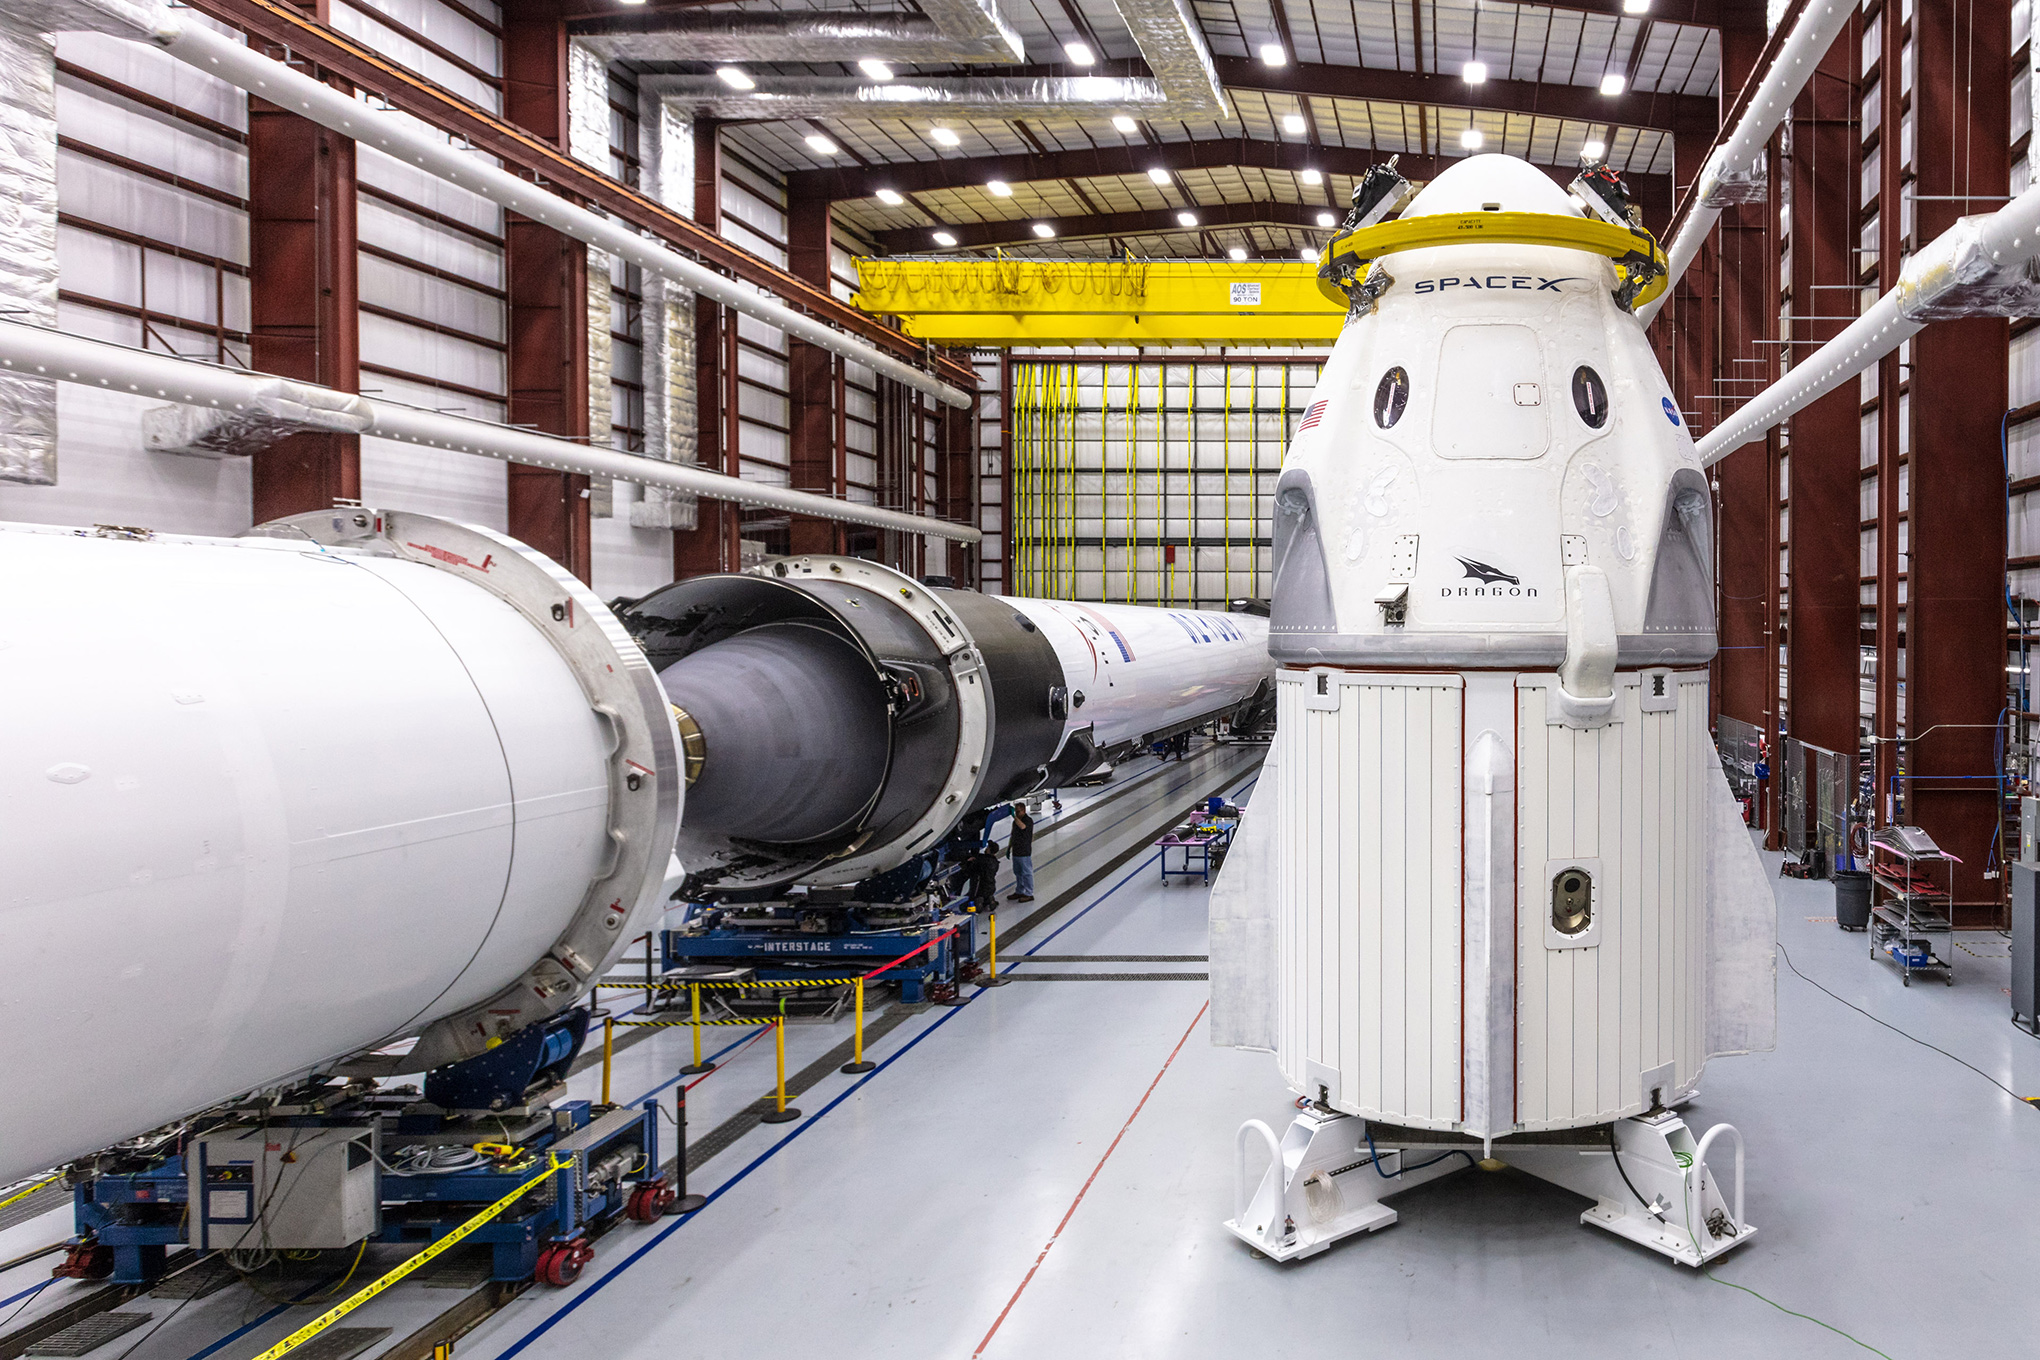 The Crew Dragon spacecraft before being mated to its Falcon 9 rocket (left); the Falcon's second stage is disposable, and the first stage returns to Earth, landing on a barge, to be refitted and reused.